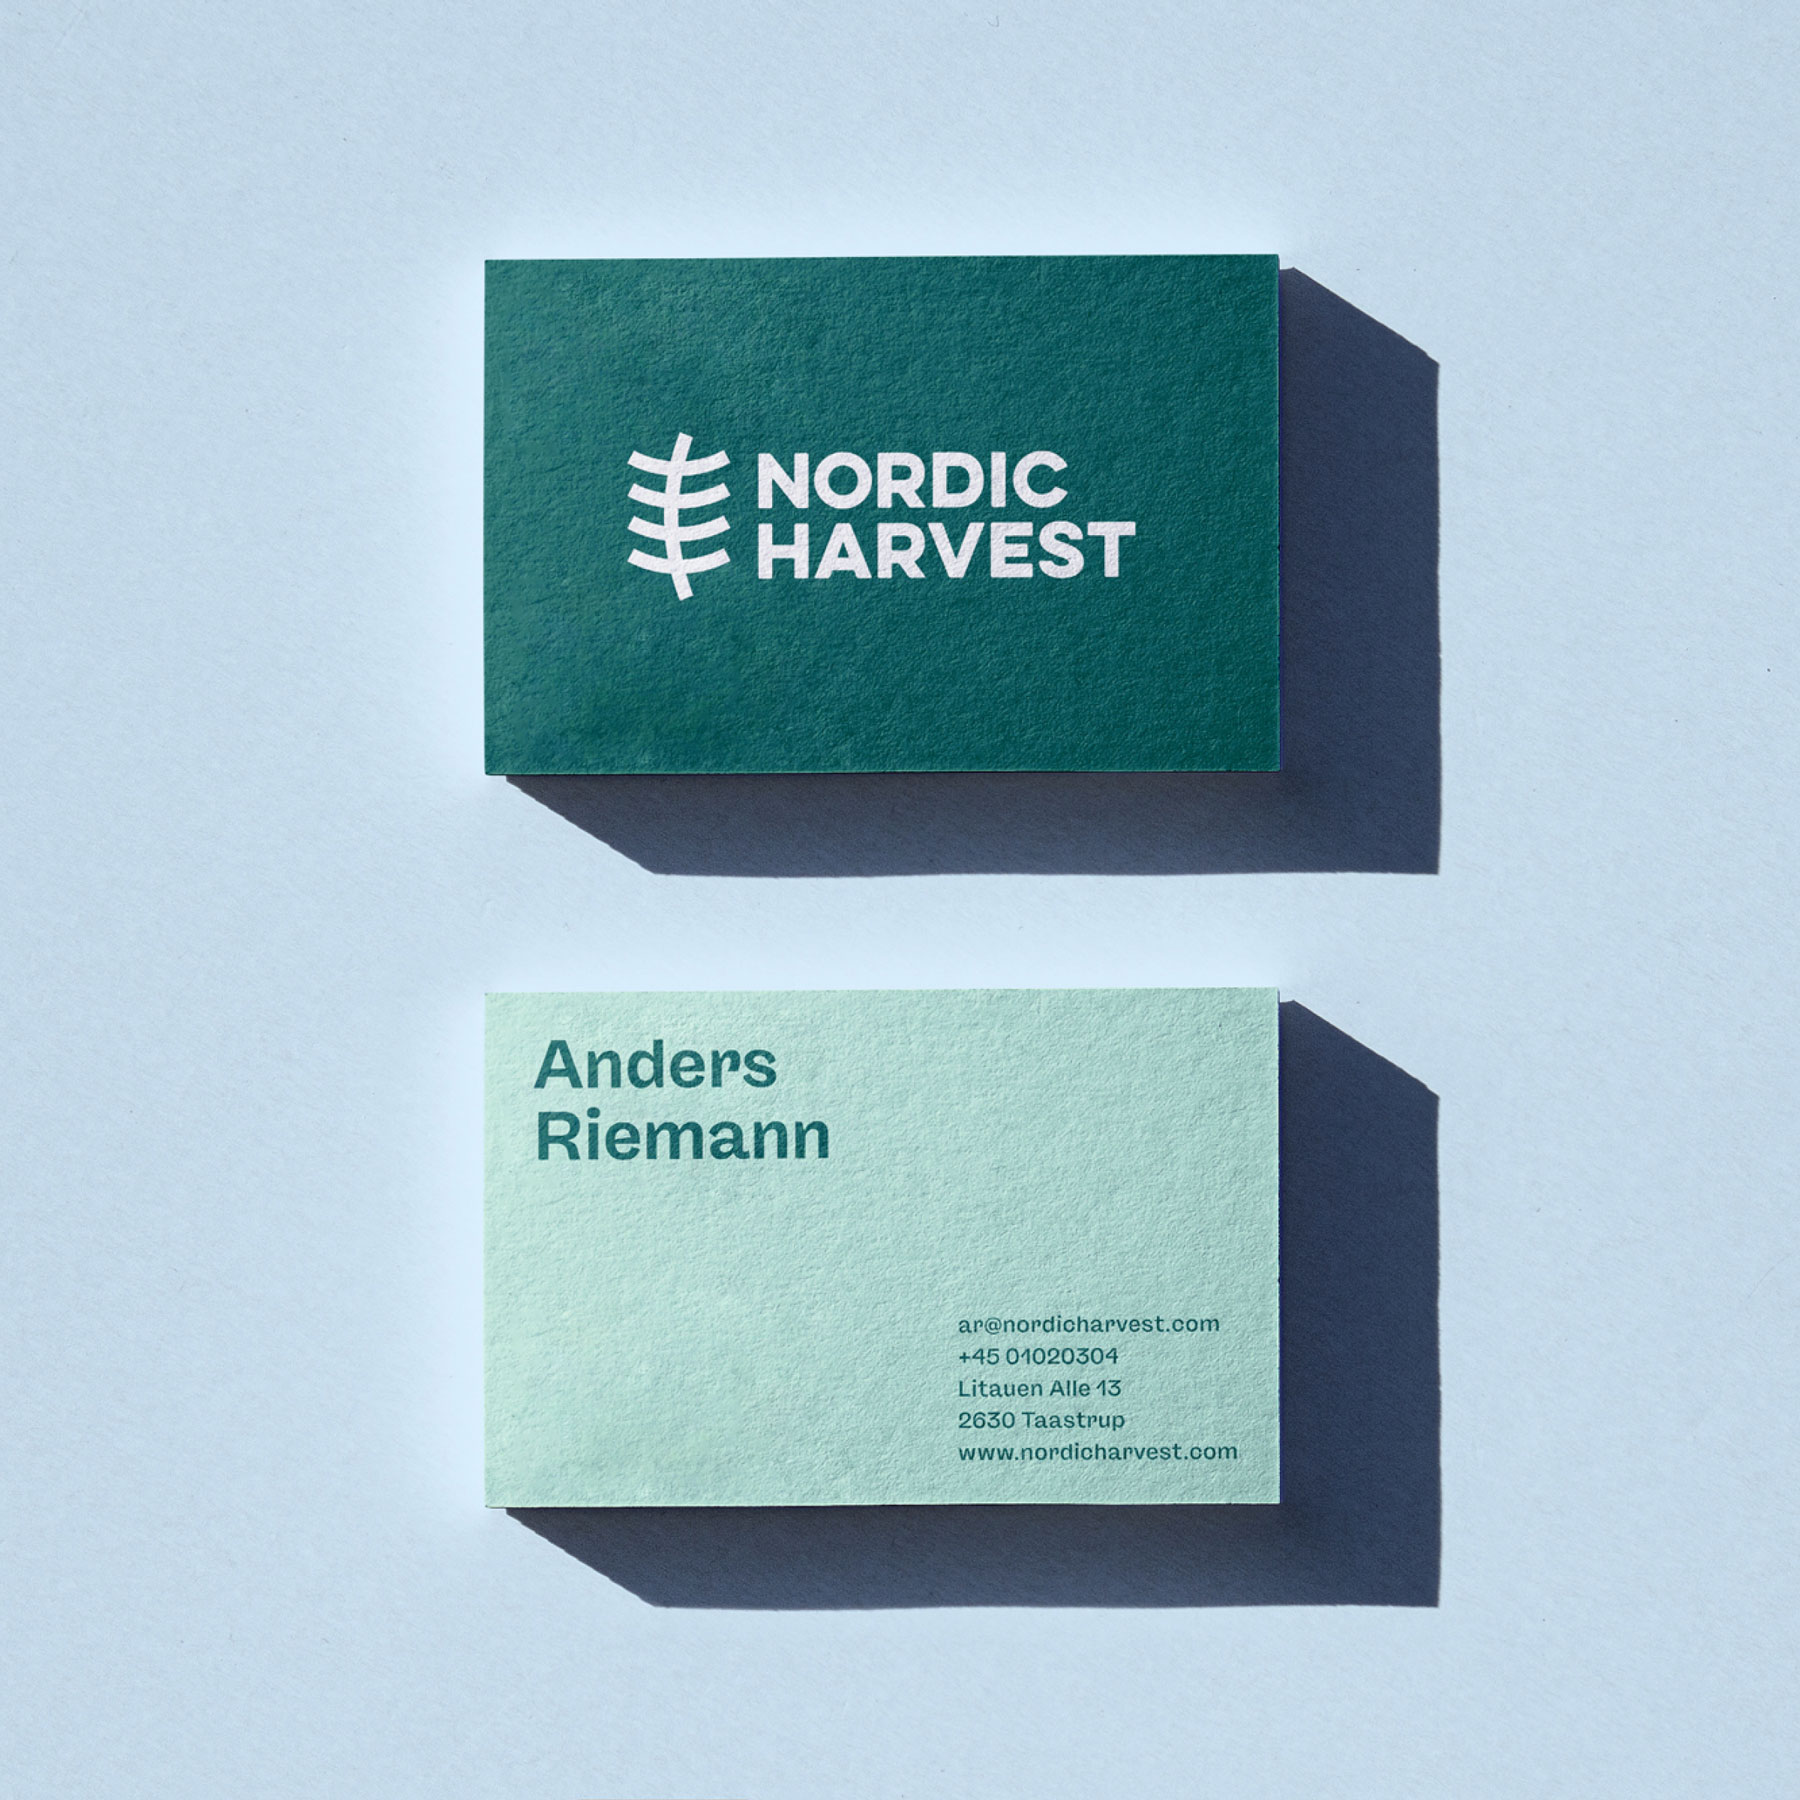 the new design of nordic harvest